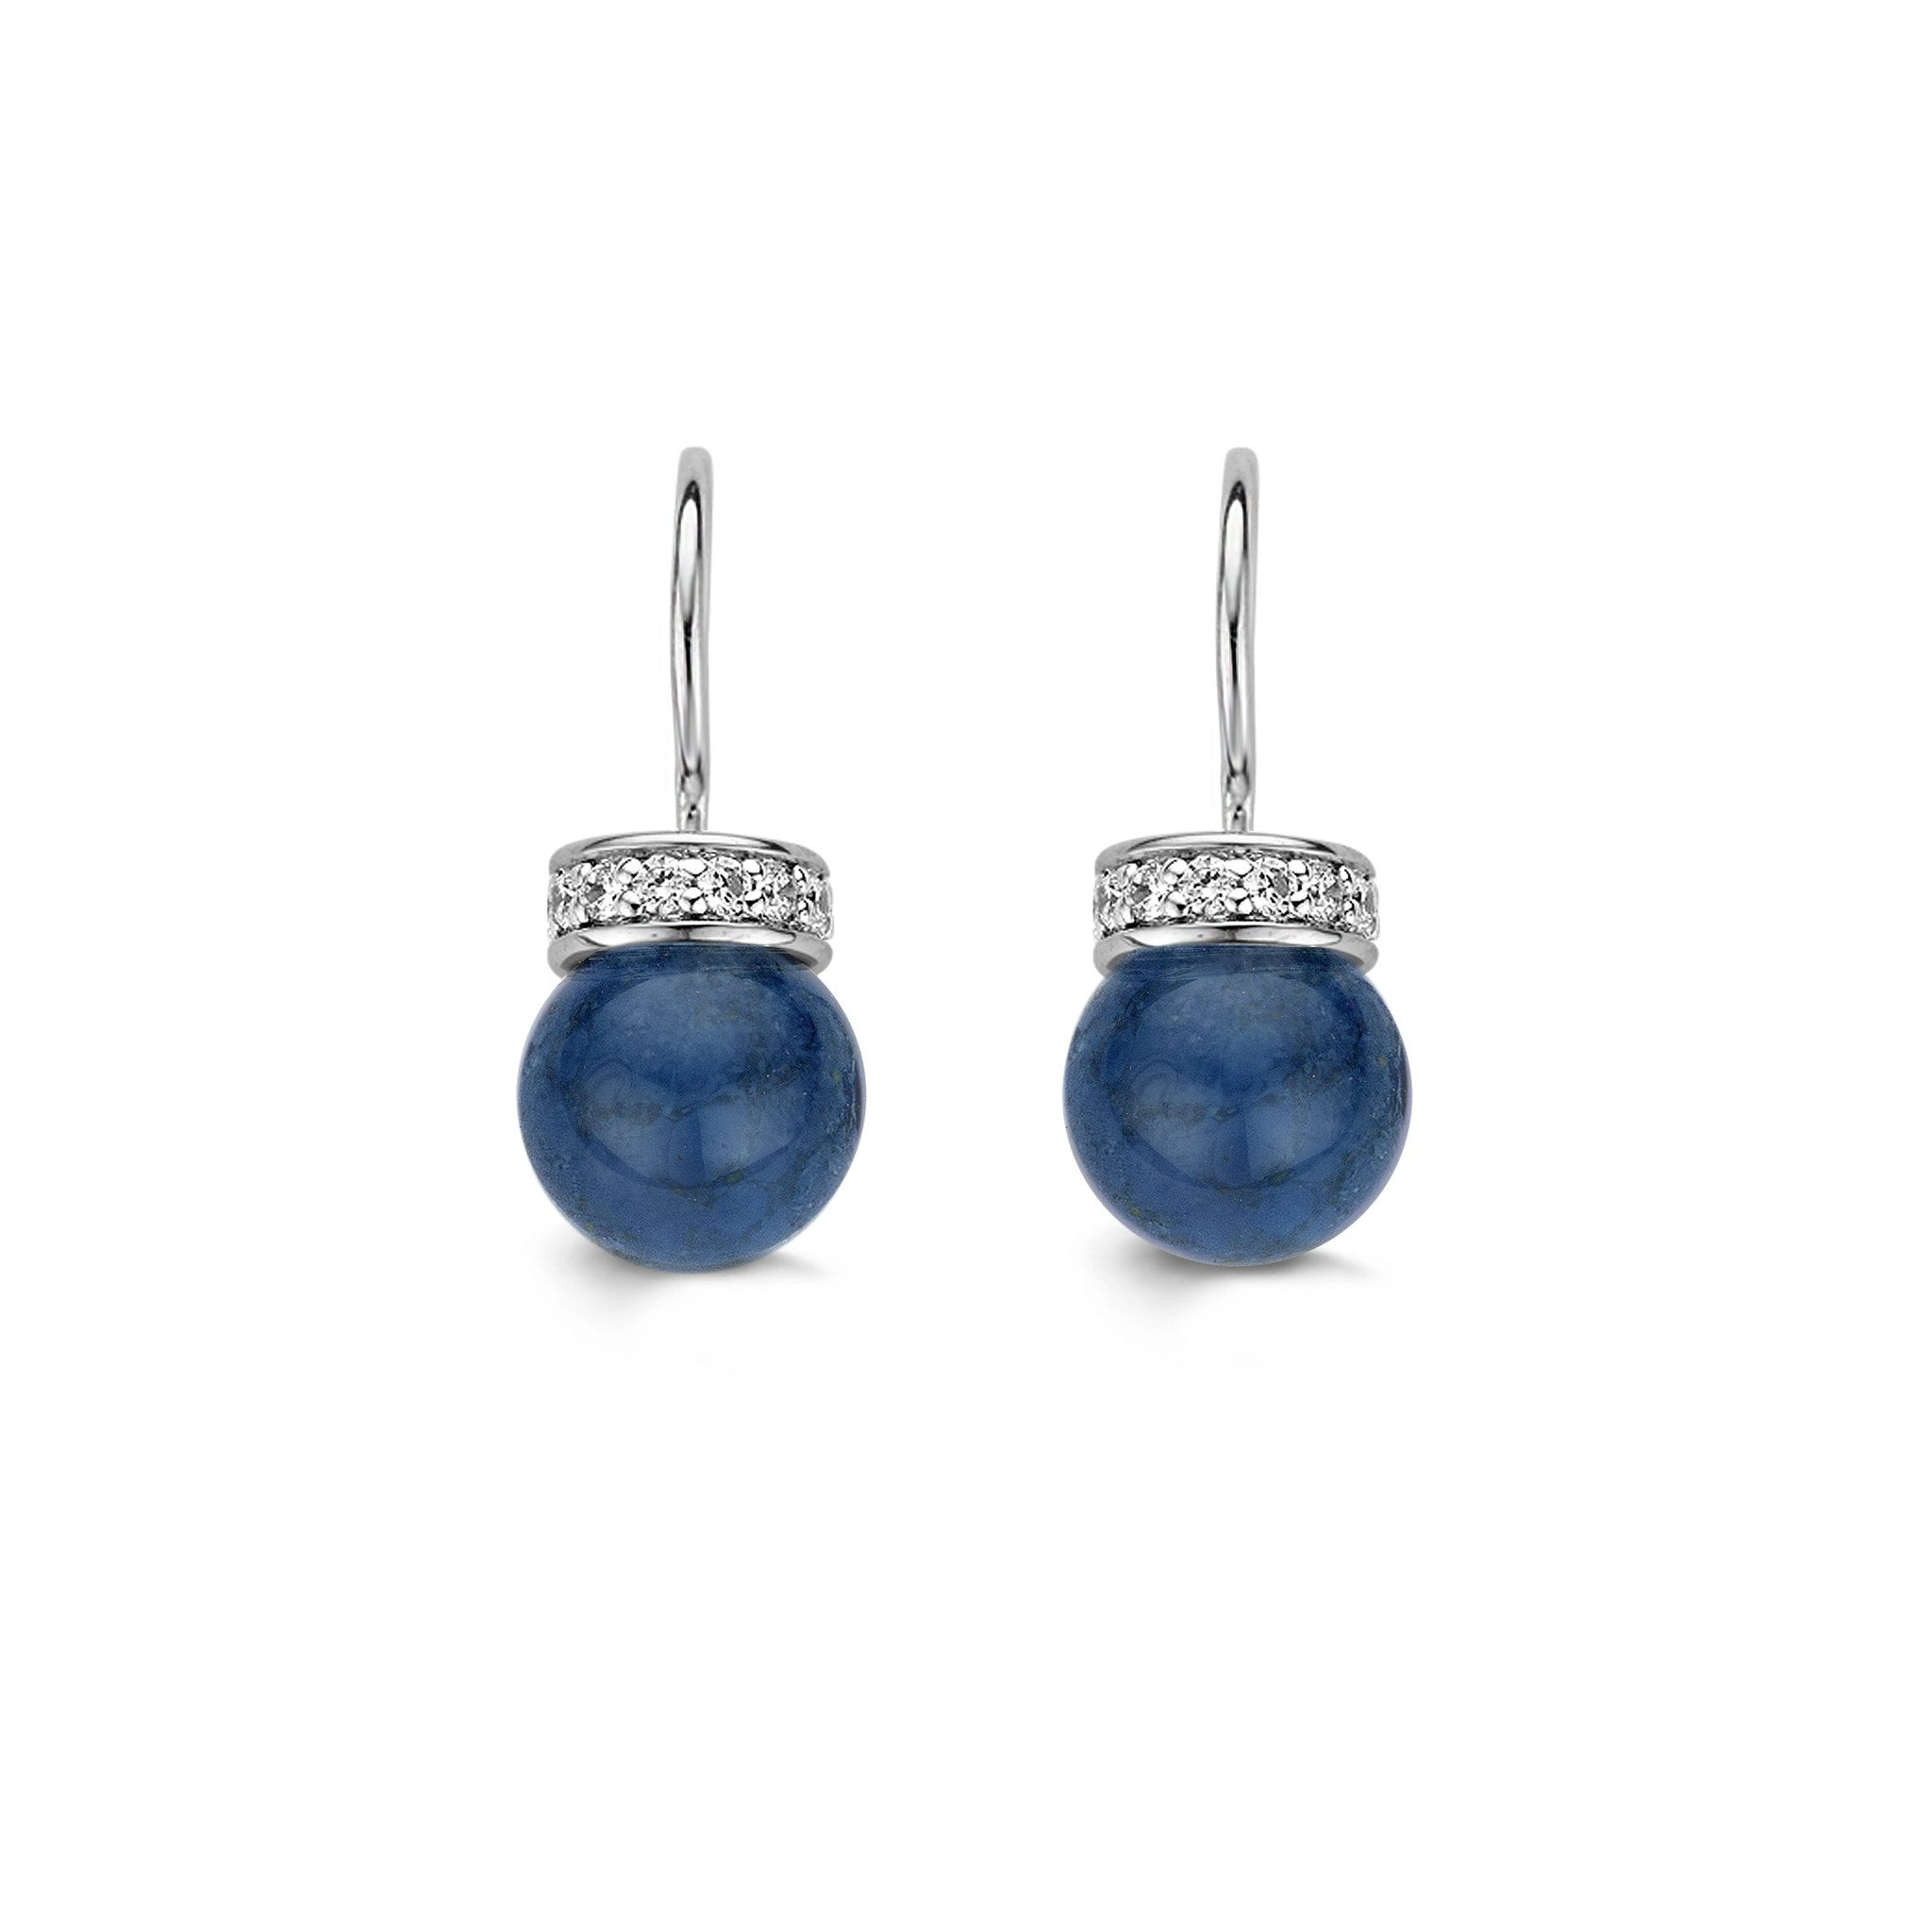 Ti Sento Earrings Drop Silver And Blue Catseye Bead Cubic Zirconia Top